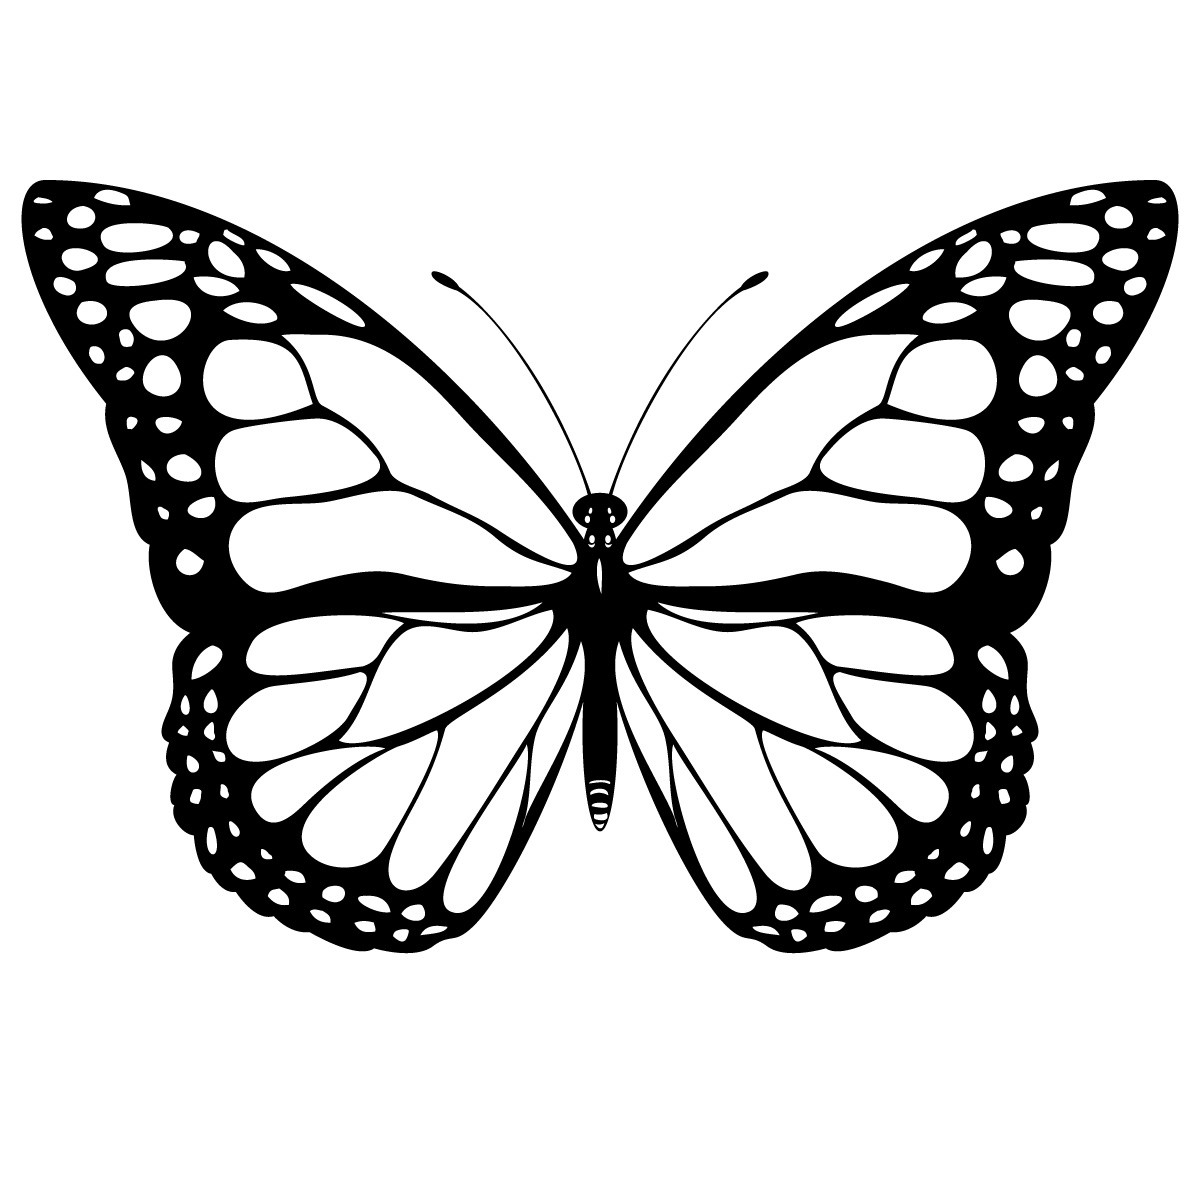 Cool Butterfly Drawings